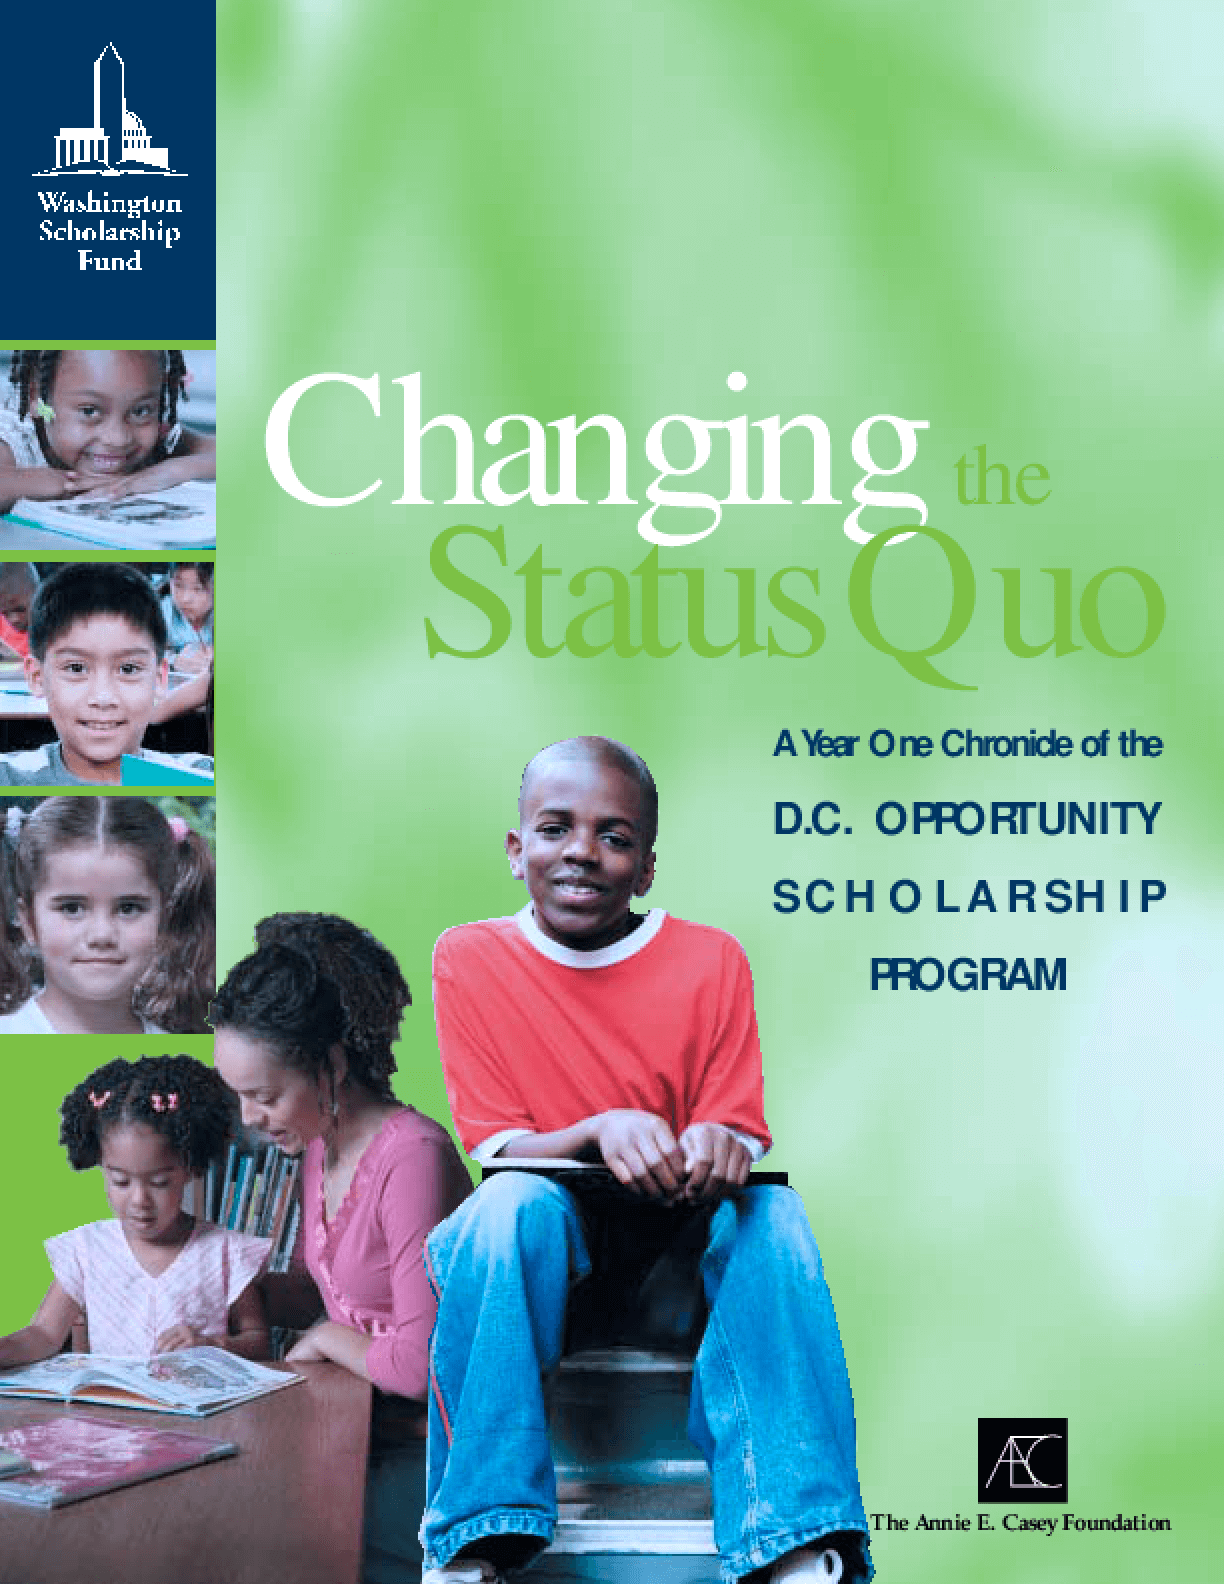 Changing the Status Quo: A Year One Chronicle of the D.C. Opportunity Scholarship Program